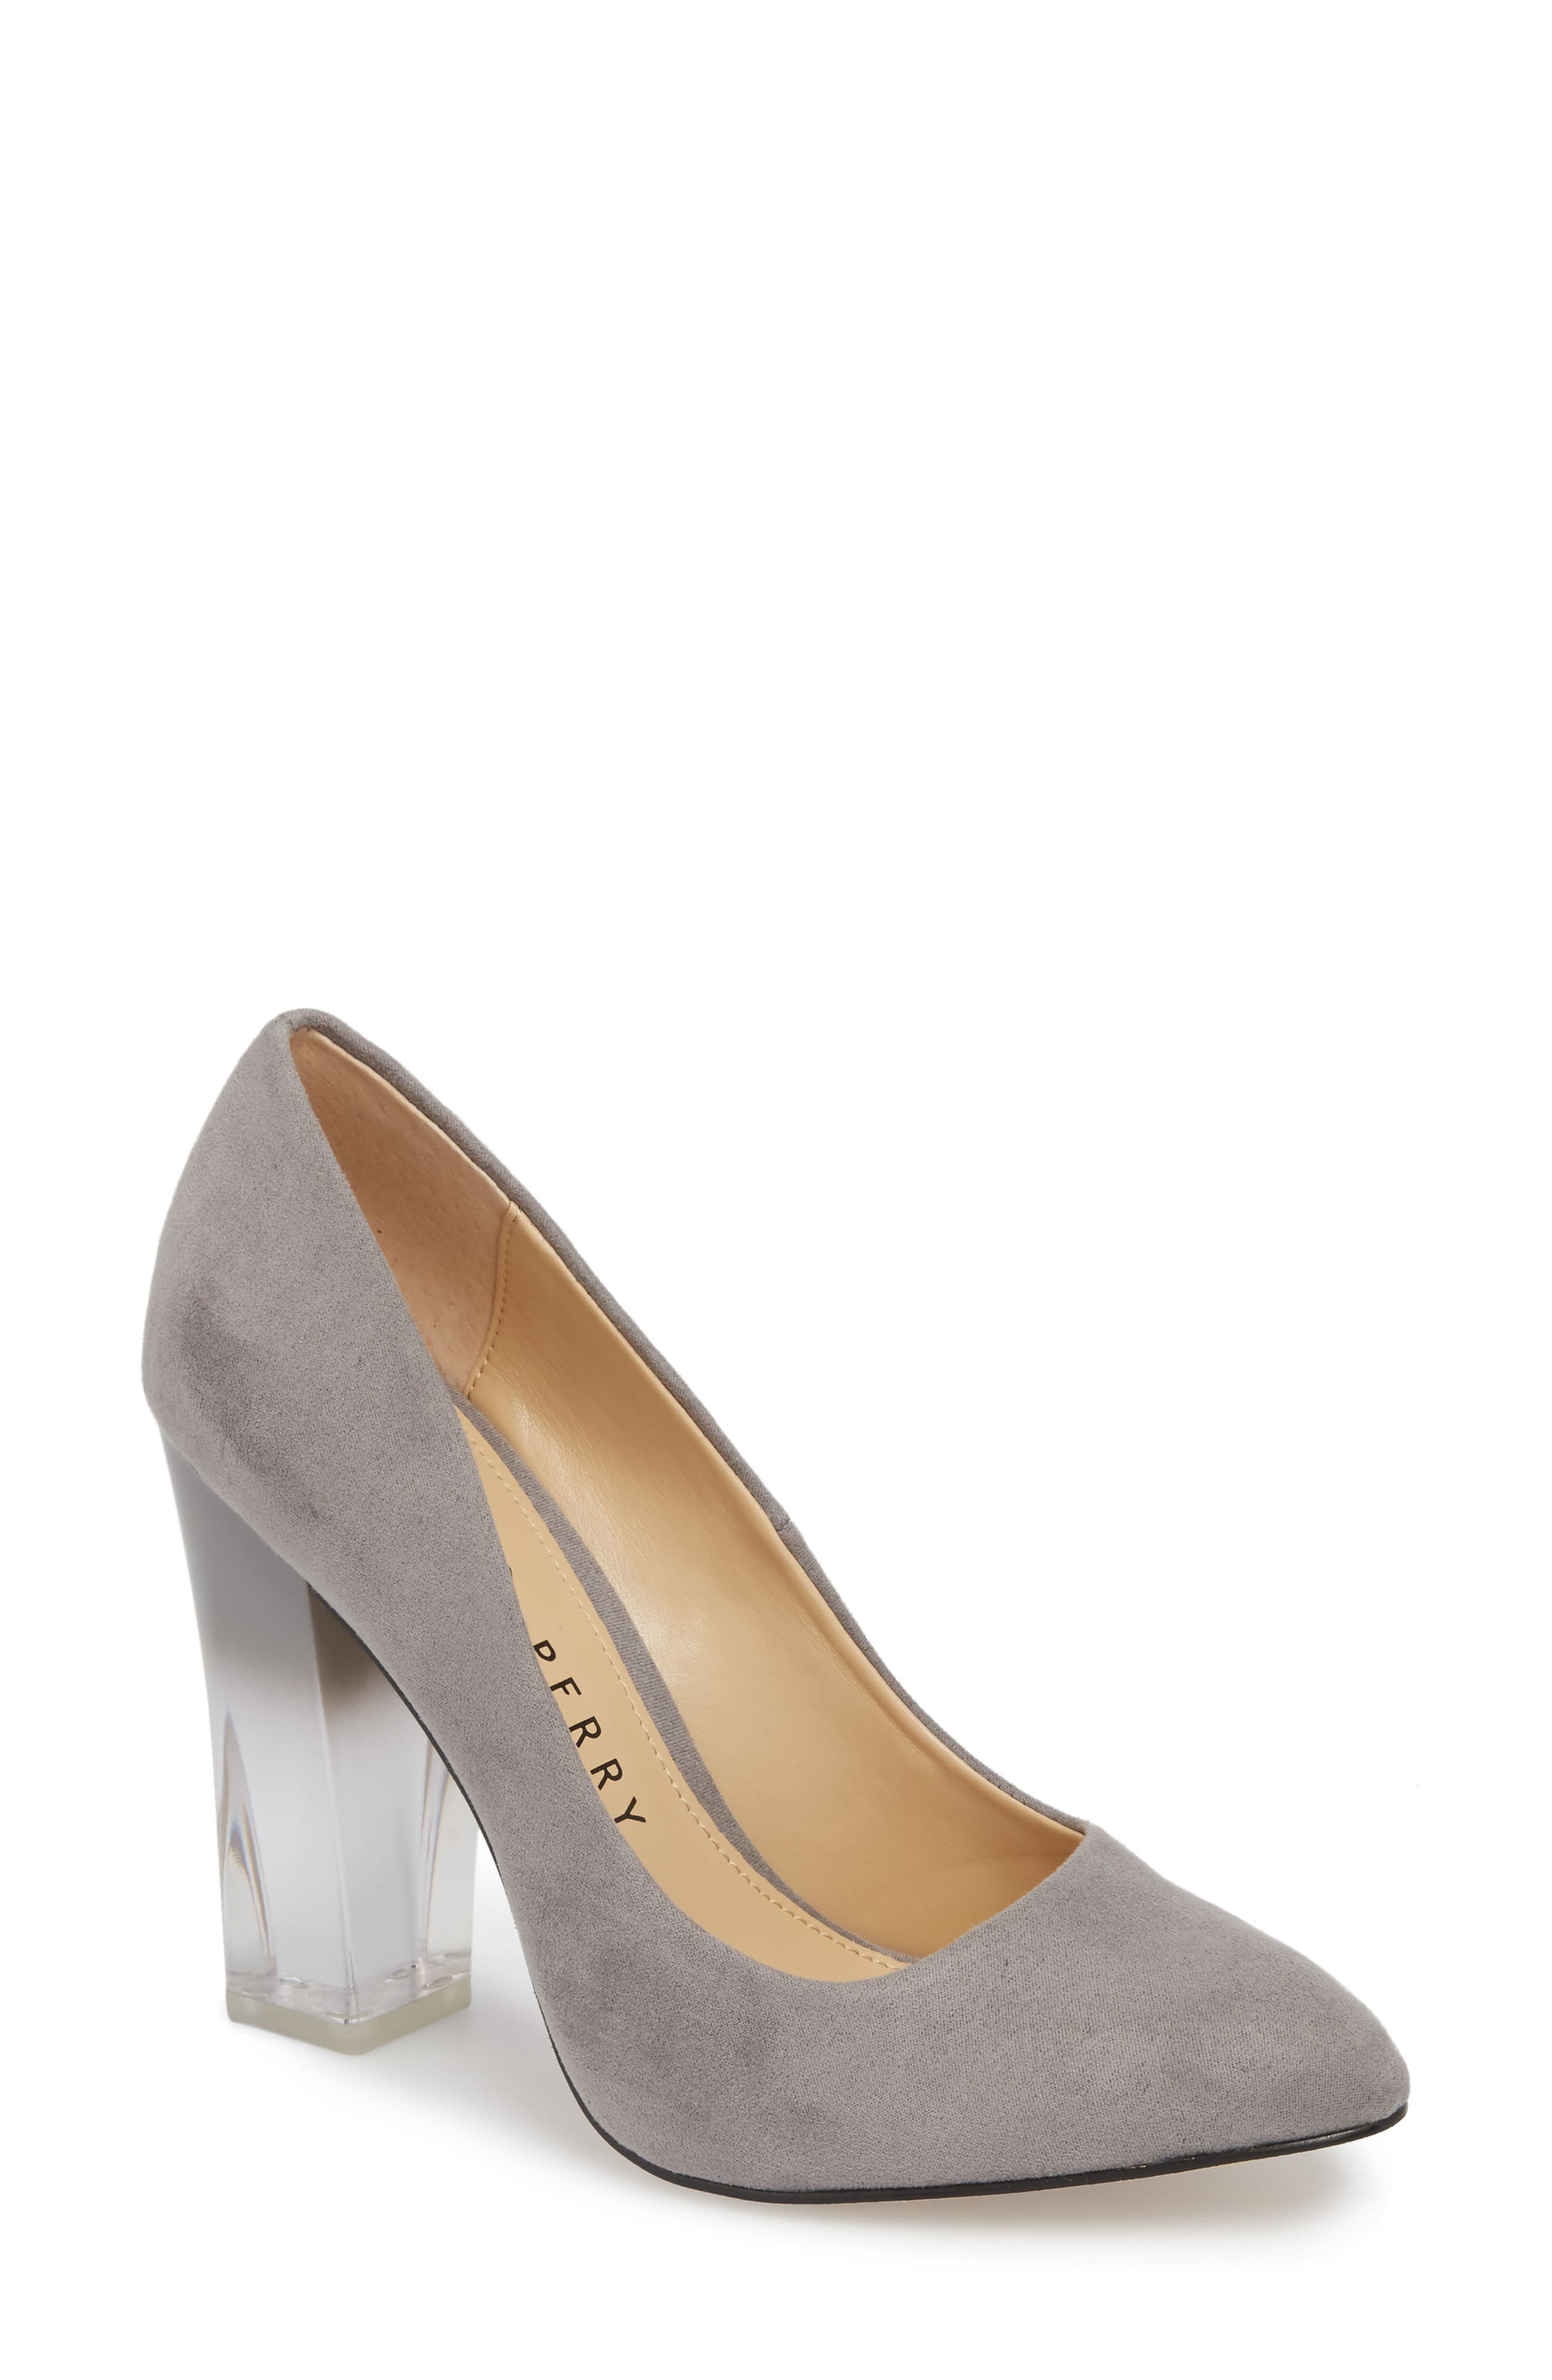 Statement Heel Pump,                         Main,                         color, Dark Nickel